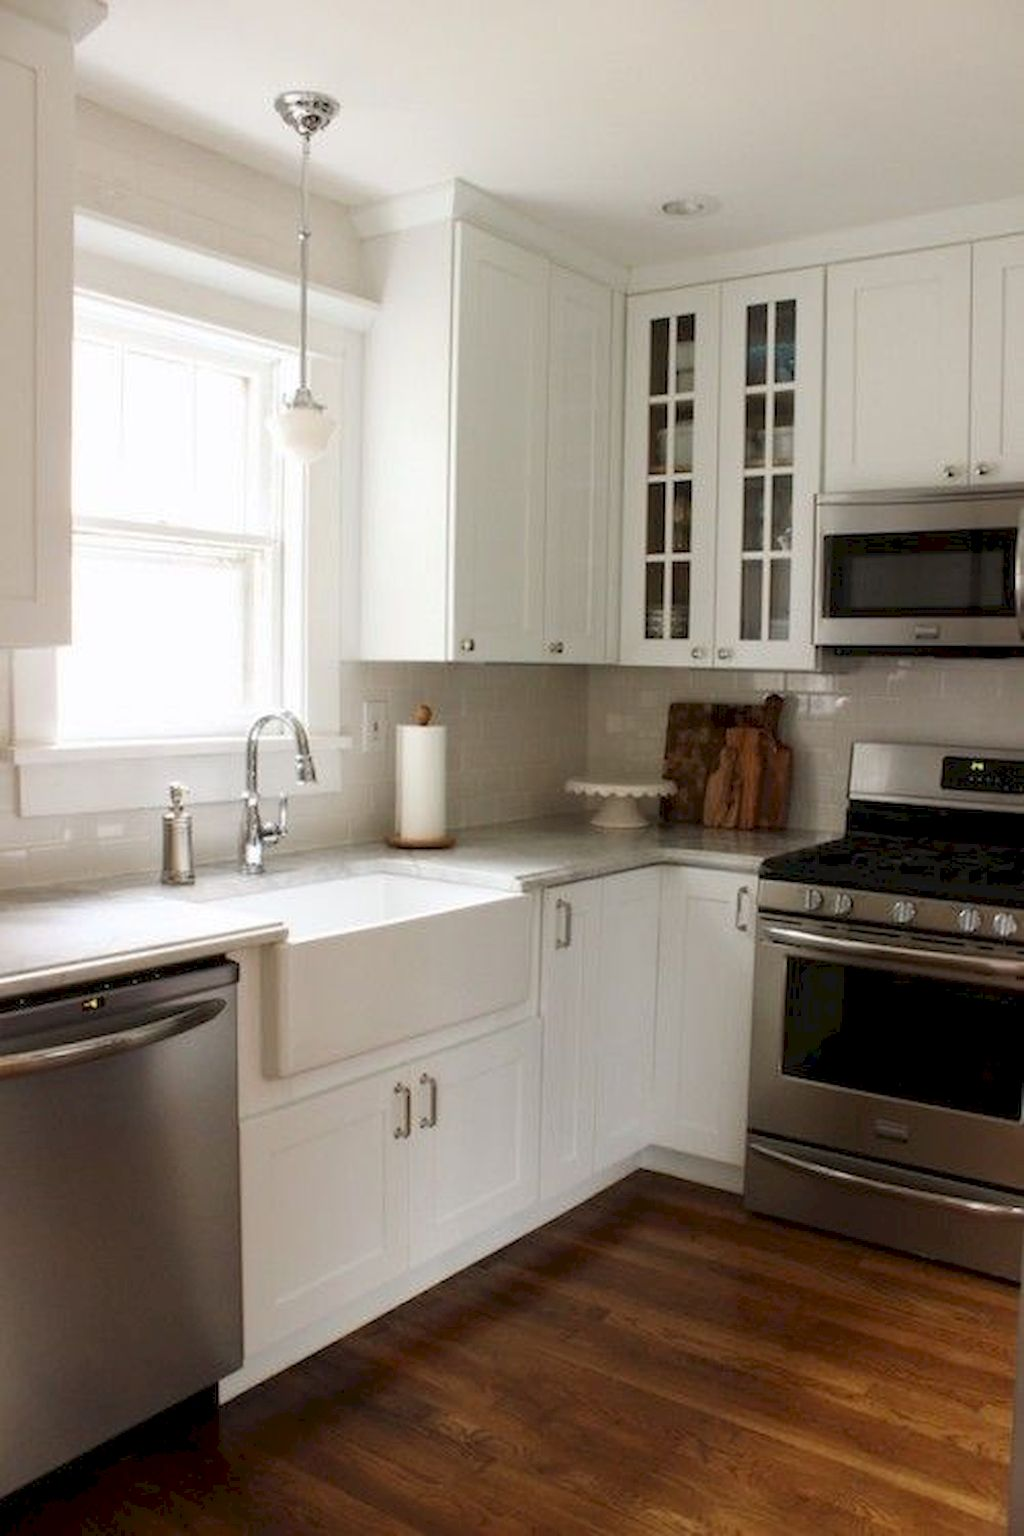 Kitchen Plan And Design For Small Room (70)